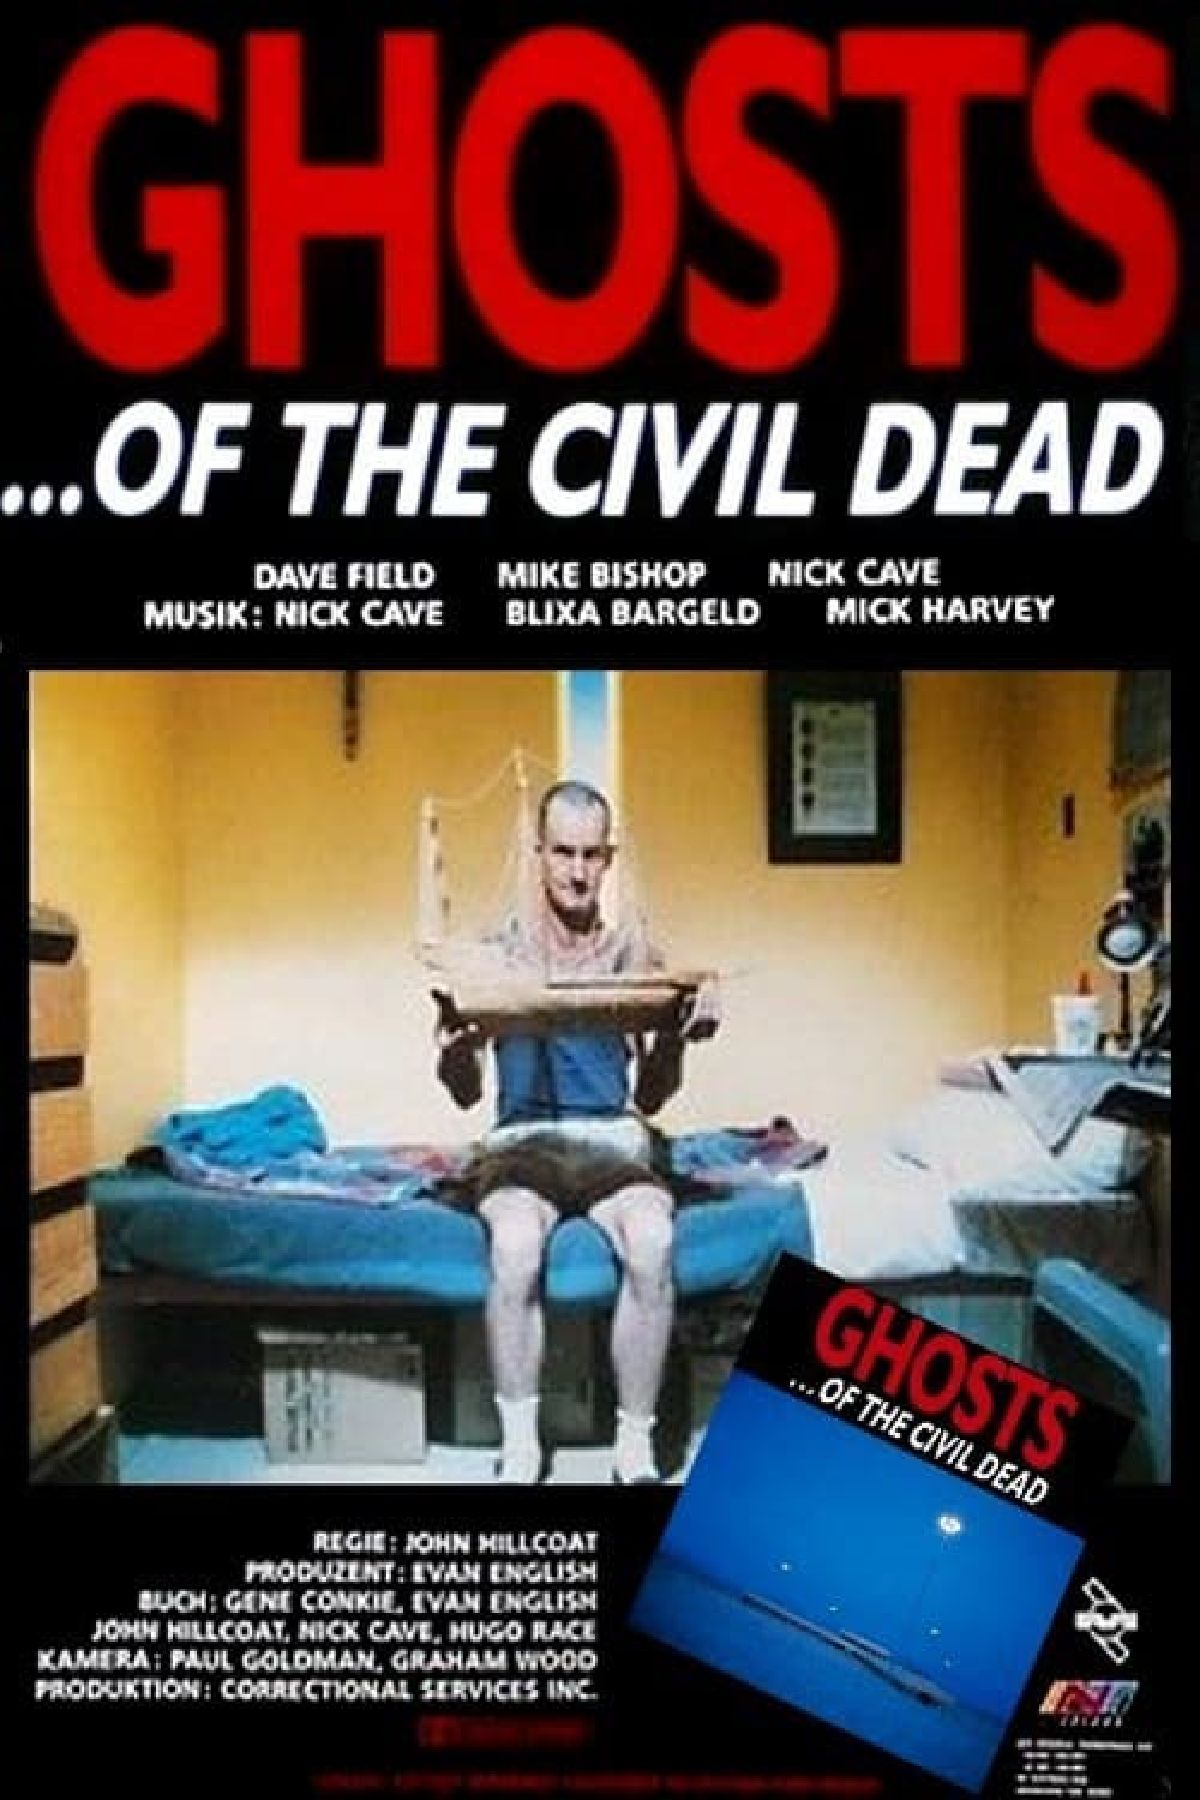 'Ghosts... Of The Civil Dead' movie poster